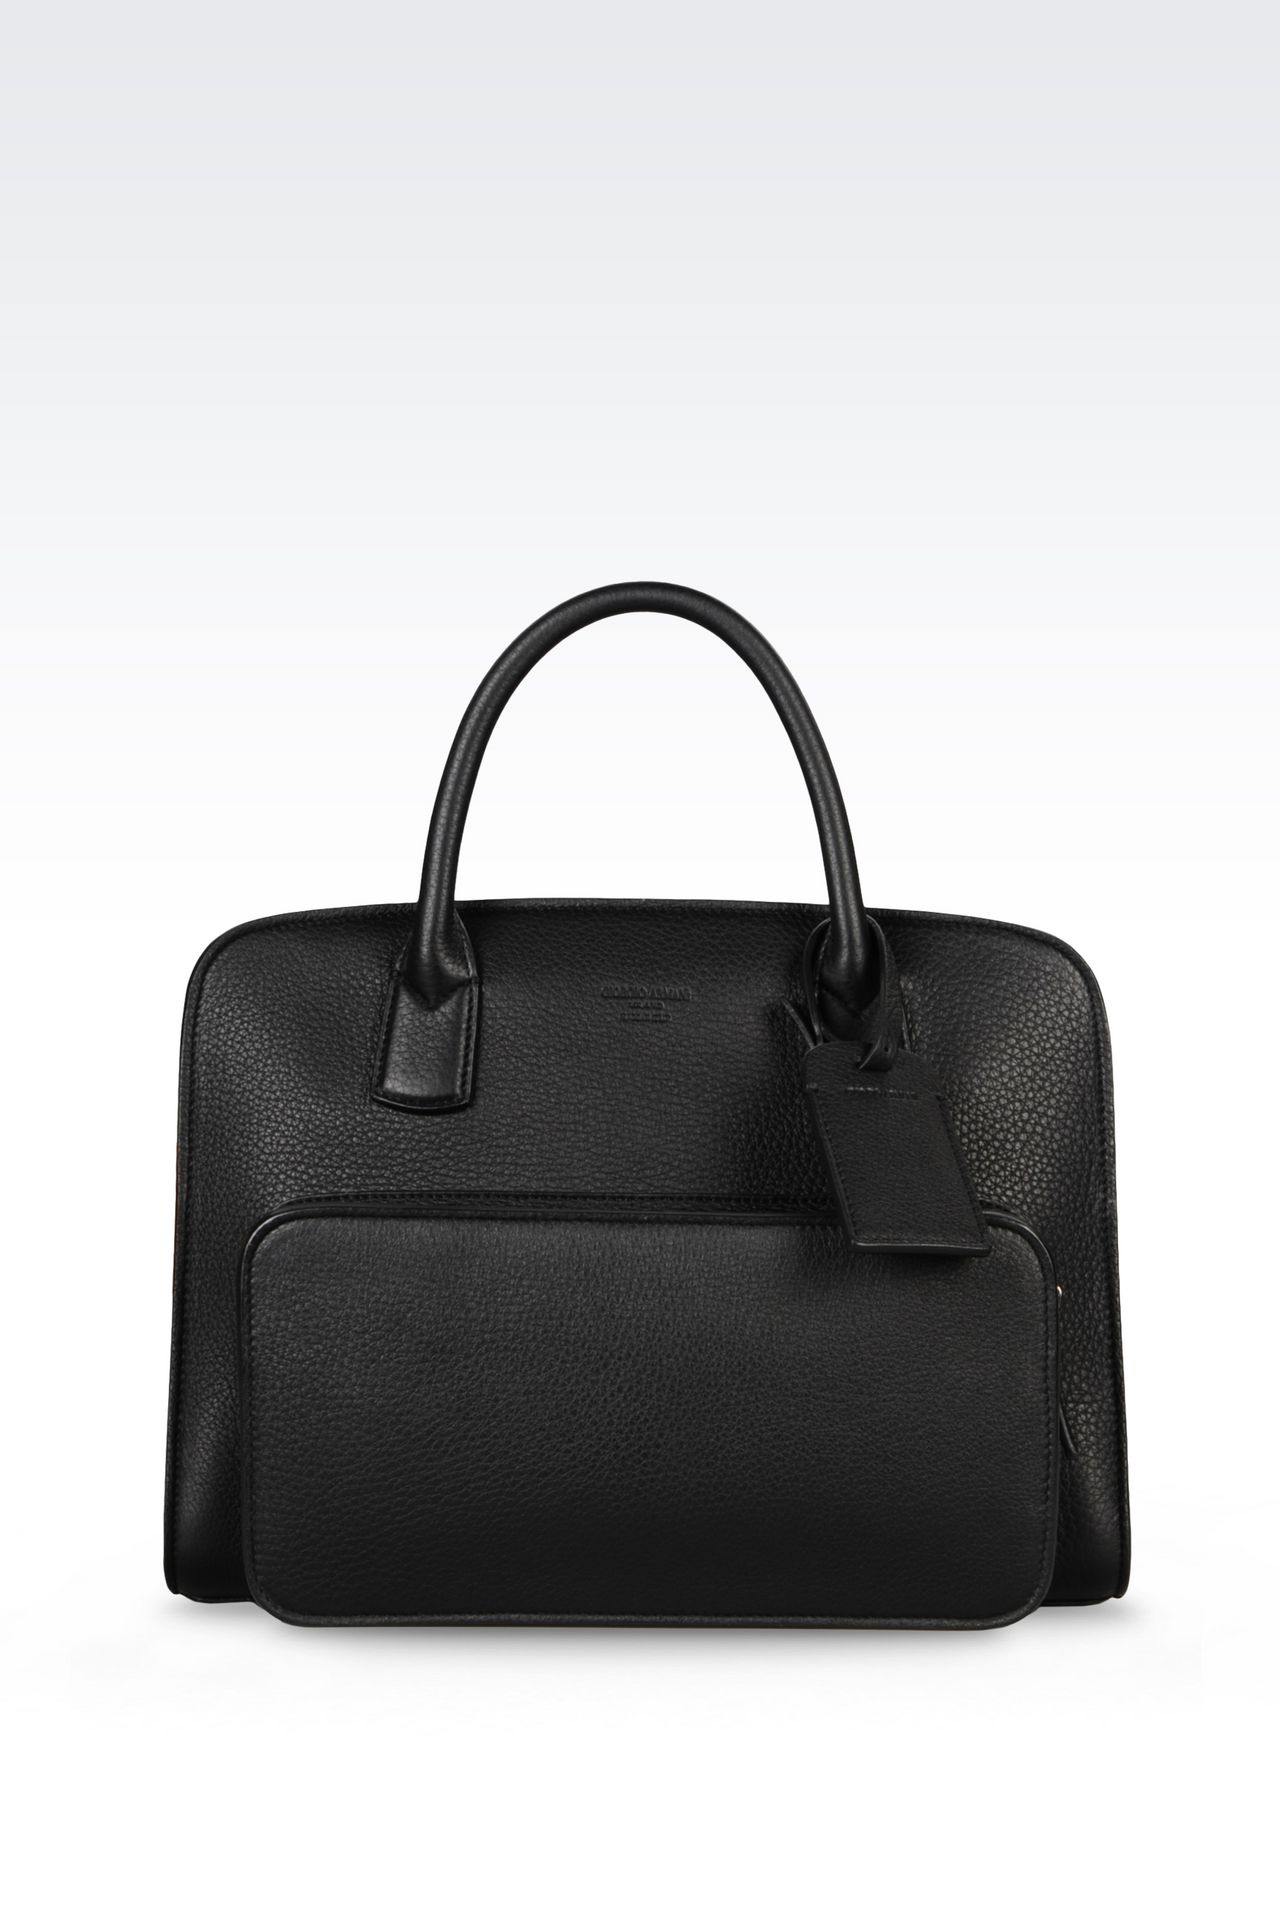 armani bags giorgio armani private bag briefcase : briefcases men by armani - 0 QPJDXOG